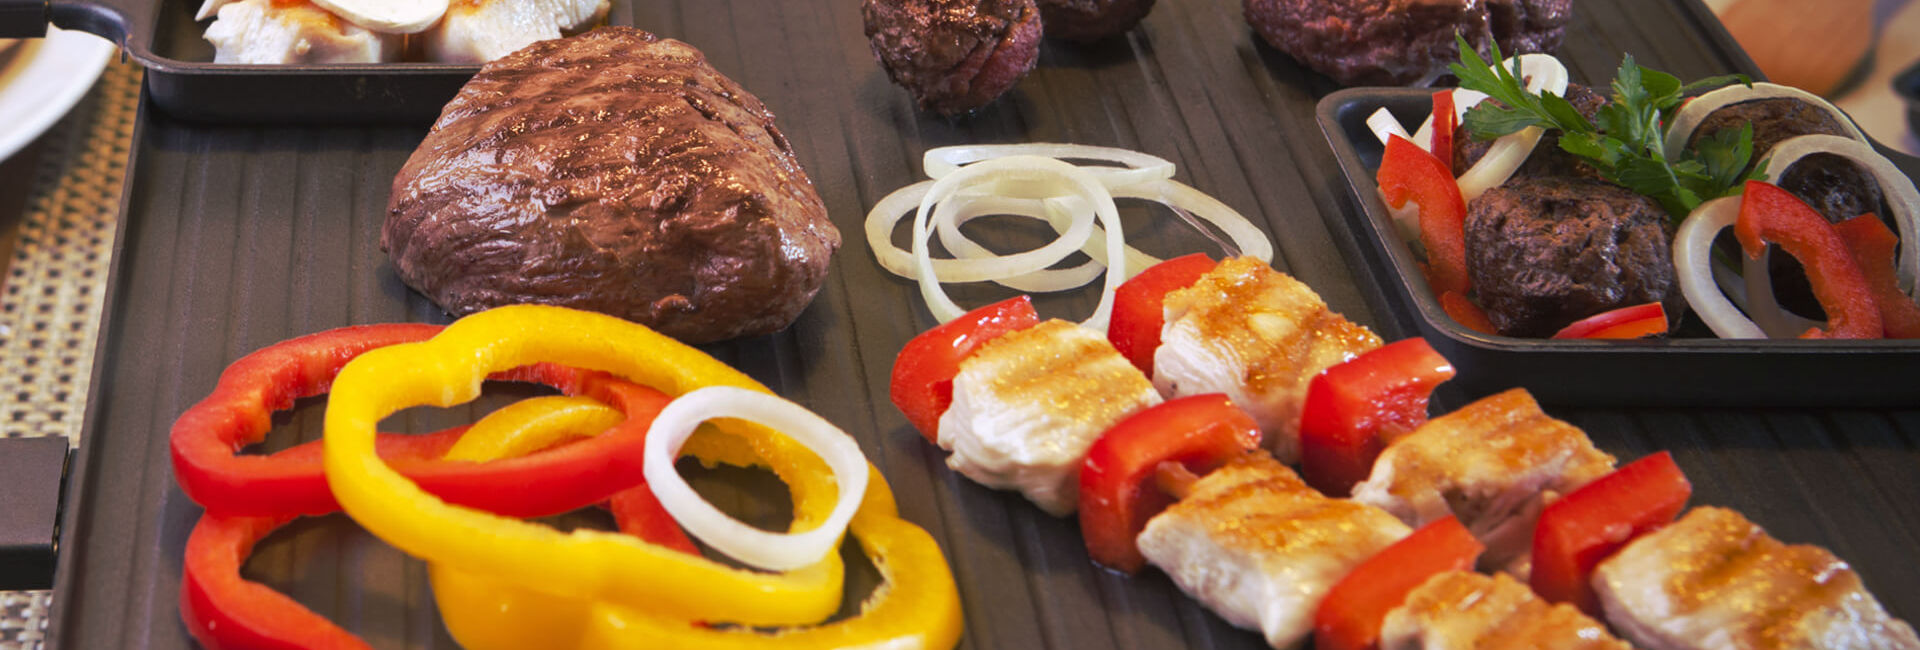 Gourmet with meat, union and peppers - Grill Tasting package Gasterij 't Karrewiel